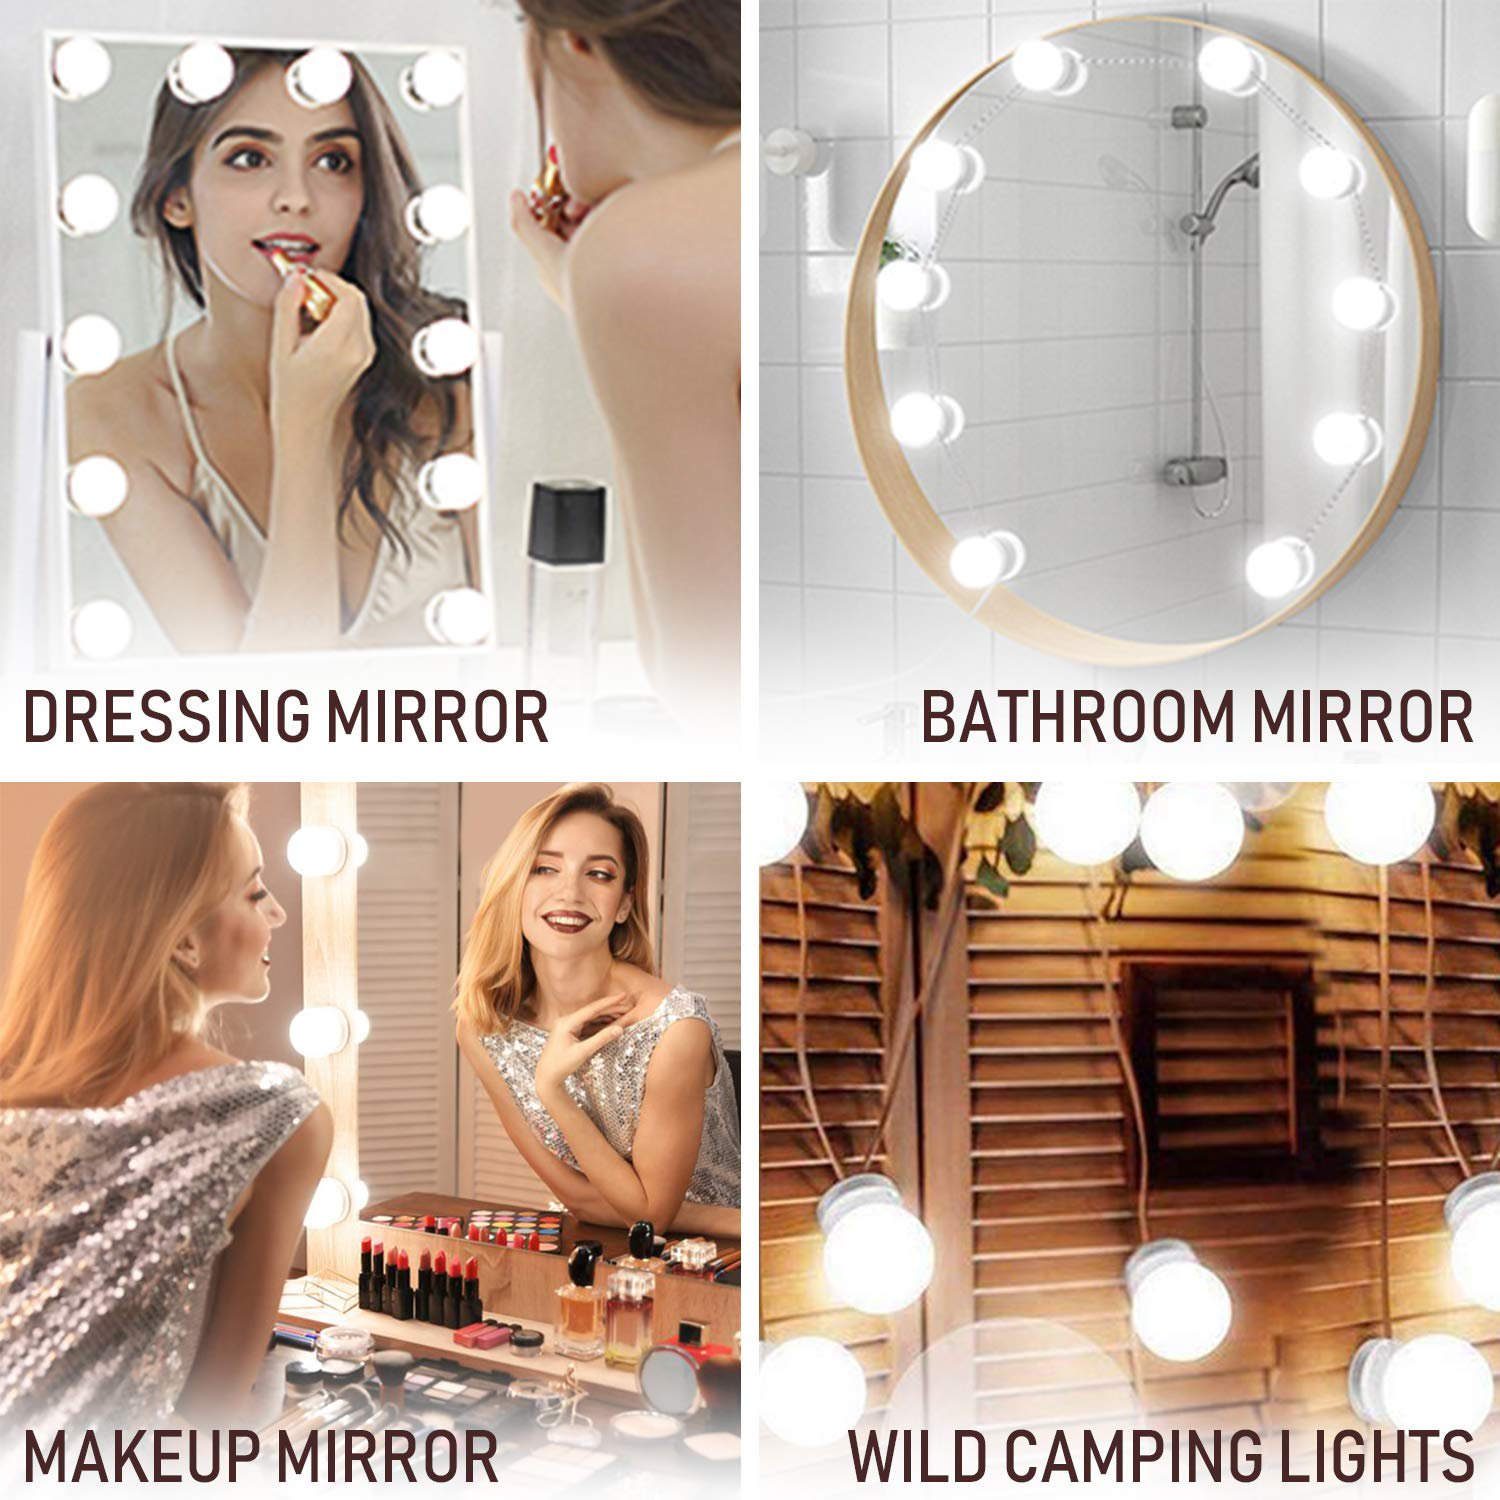 3 Dimmable Color With 10 Led Light Bulbs For Vanity Table Set And Bathroom Mirror Hollywood Style Lighting Fixture Strip With Usb Charging Cable 3 Dimmable Color Mirror Not Include Walmart Com Walmart Com